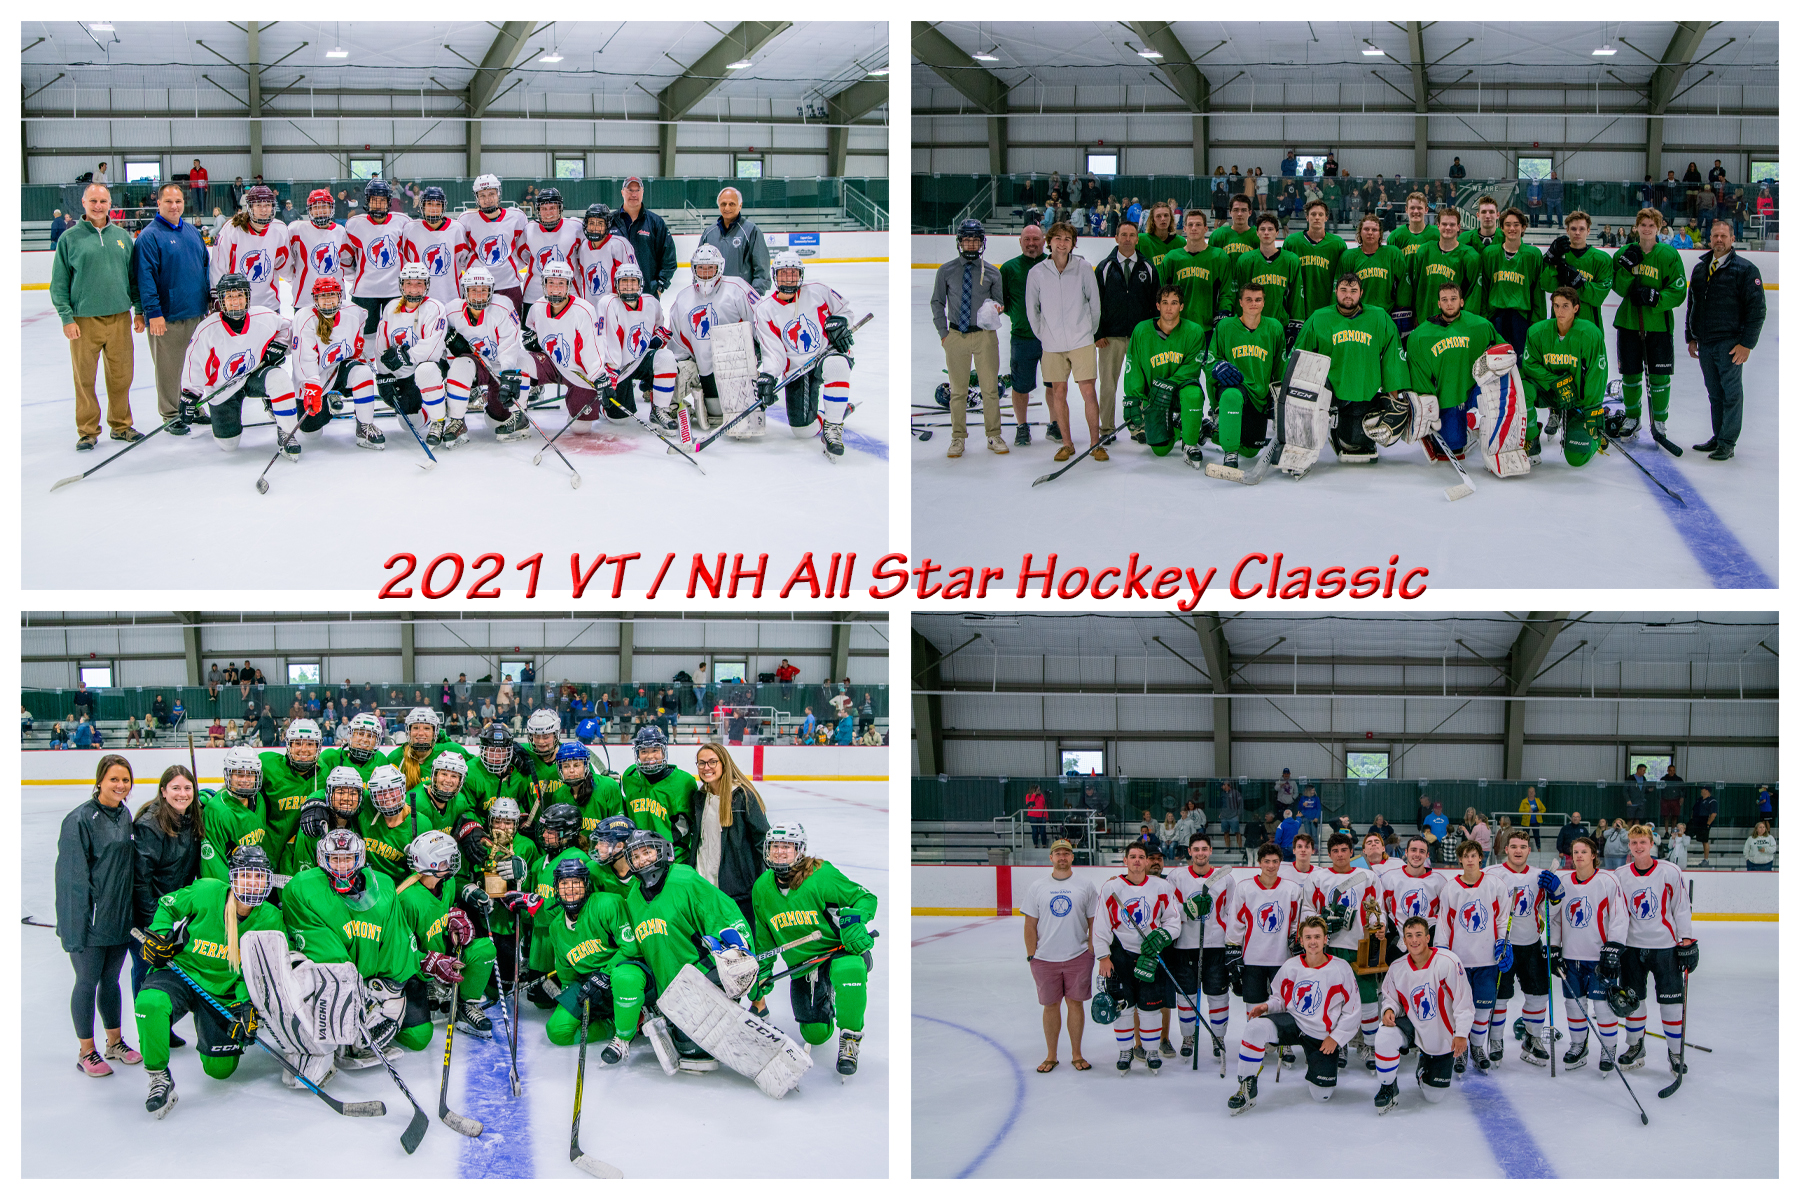 Vermont girls rally to beat New Hampshire at Make-A-Wish All-Star Hockey Classic